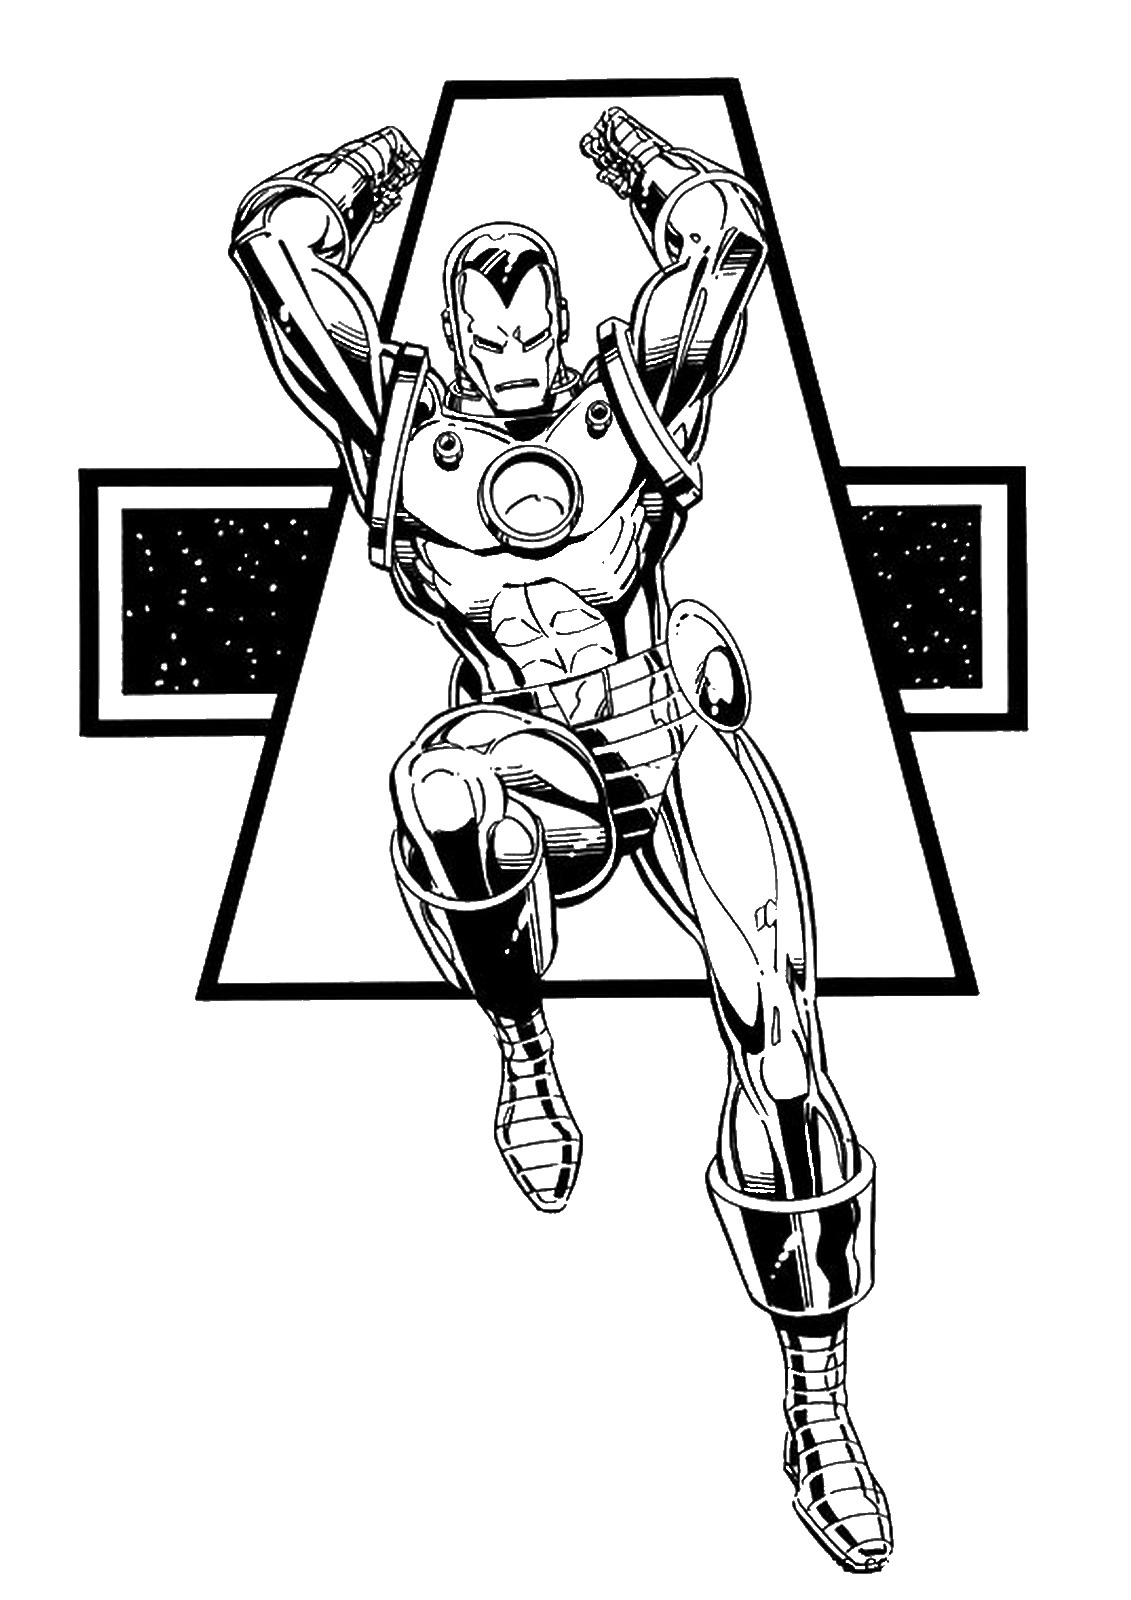 iron man colouring sheets coloring pages for kids free images iron man avengers colouring man sheets iron